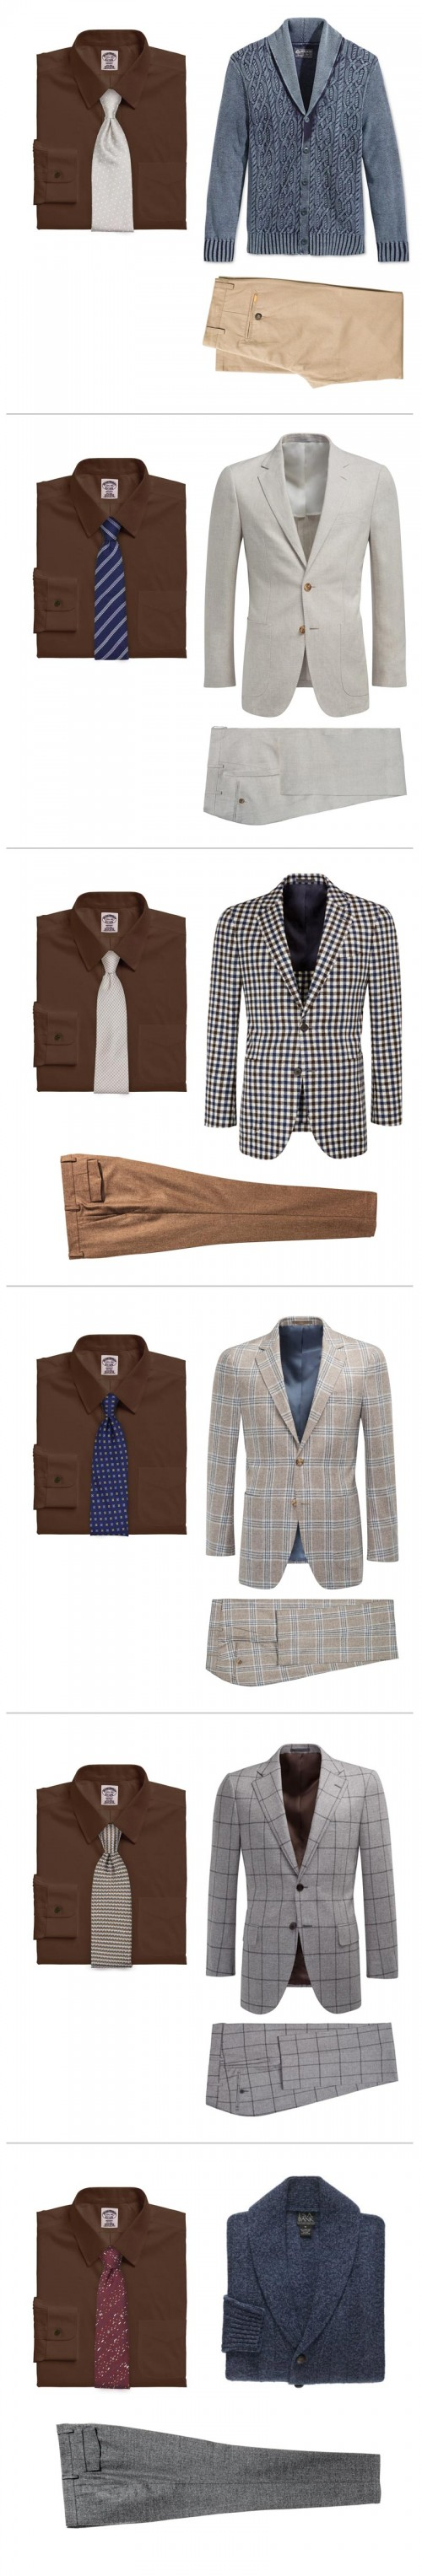 How To Wear A Brown Dress Shirt - 6 Looks for Men